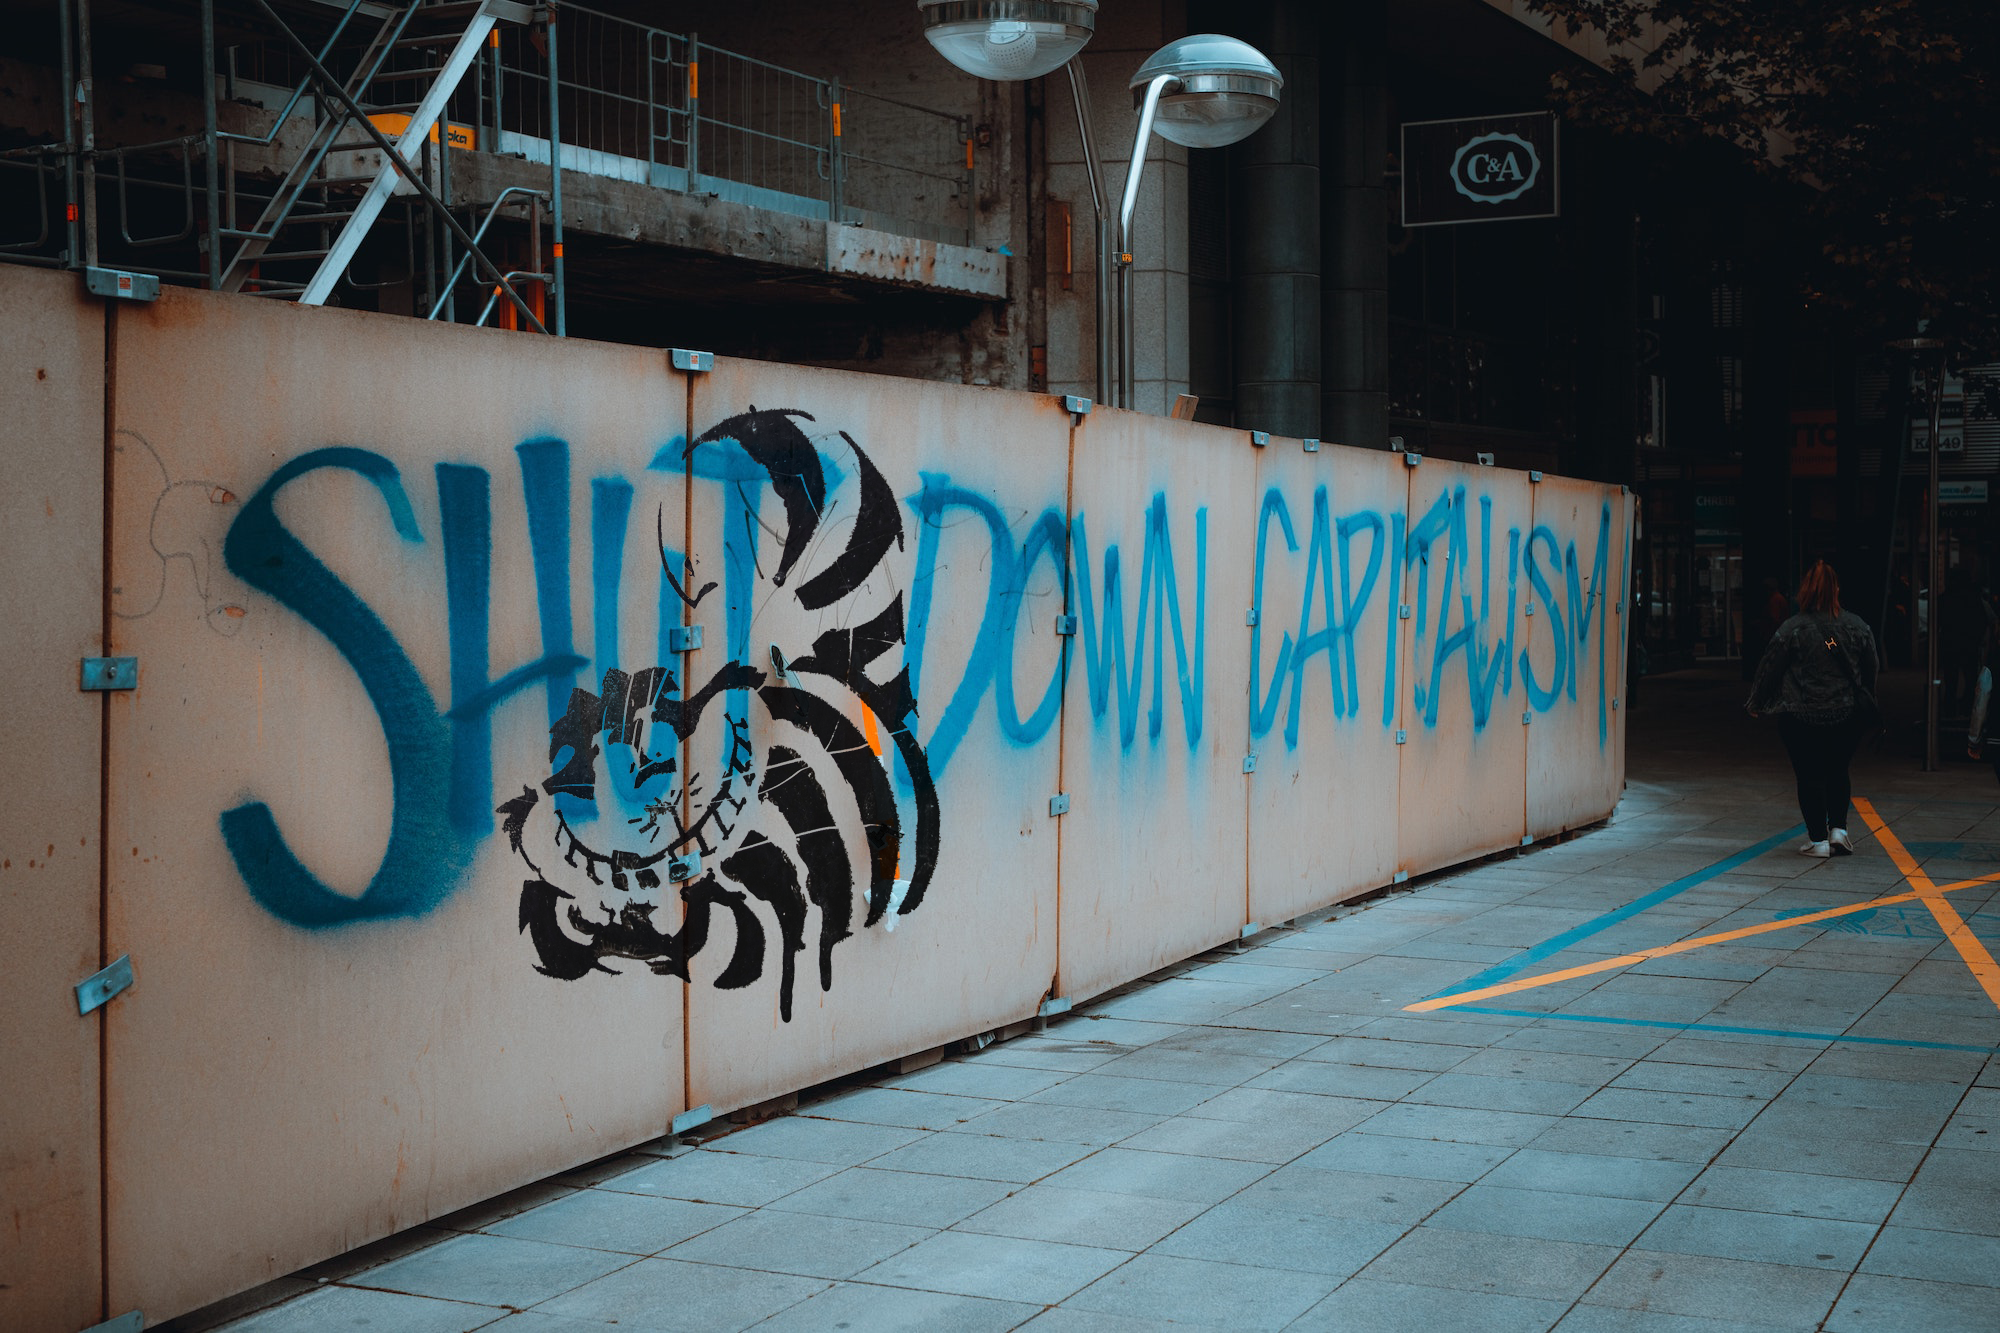 "Graffiti of the Cheshire cat from Alice in Wonderland superimposed (in Photoshop) over an image of graffiti reading ""Shut Down Capitalism"" on a wall, with a figure walking by"